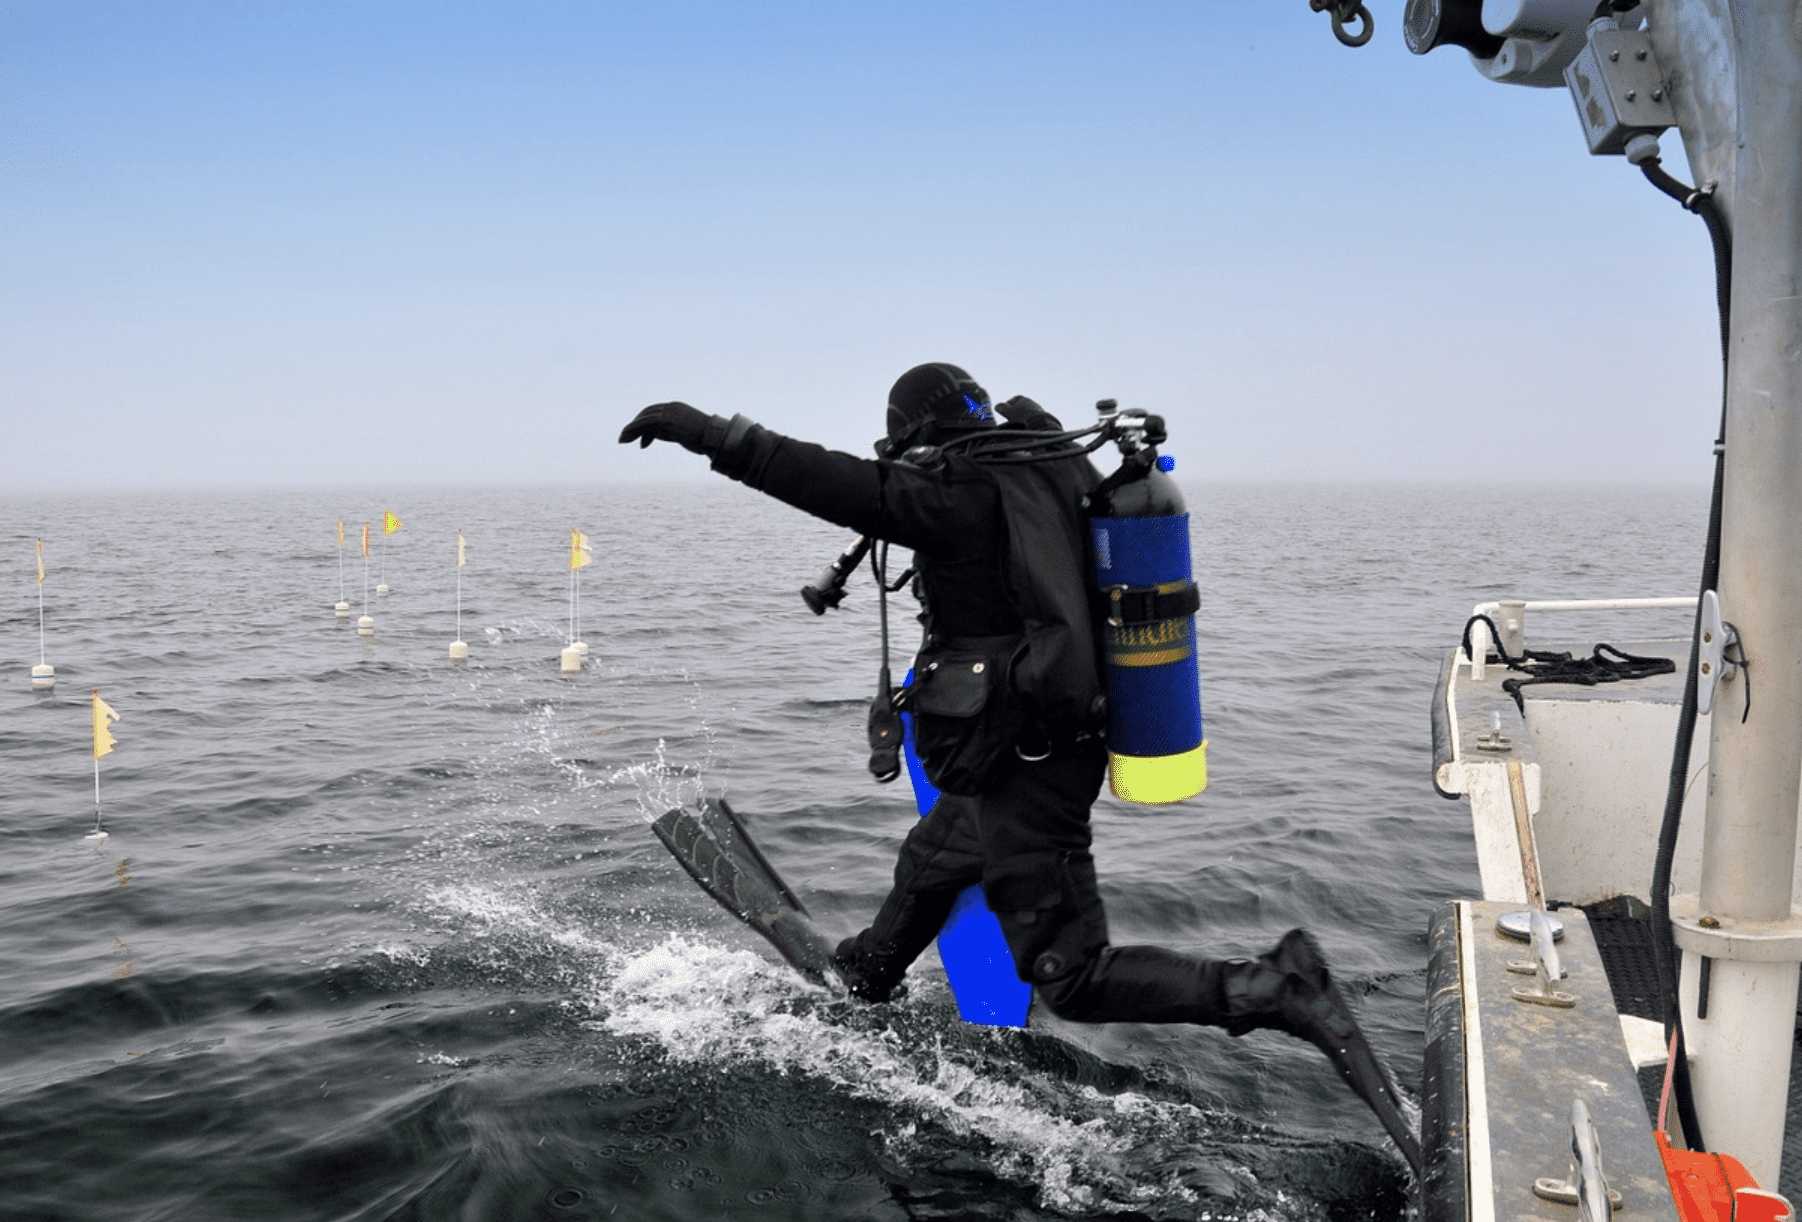 diver about to jump in the ocean